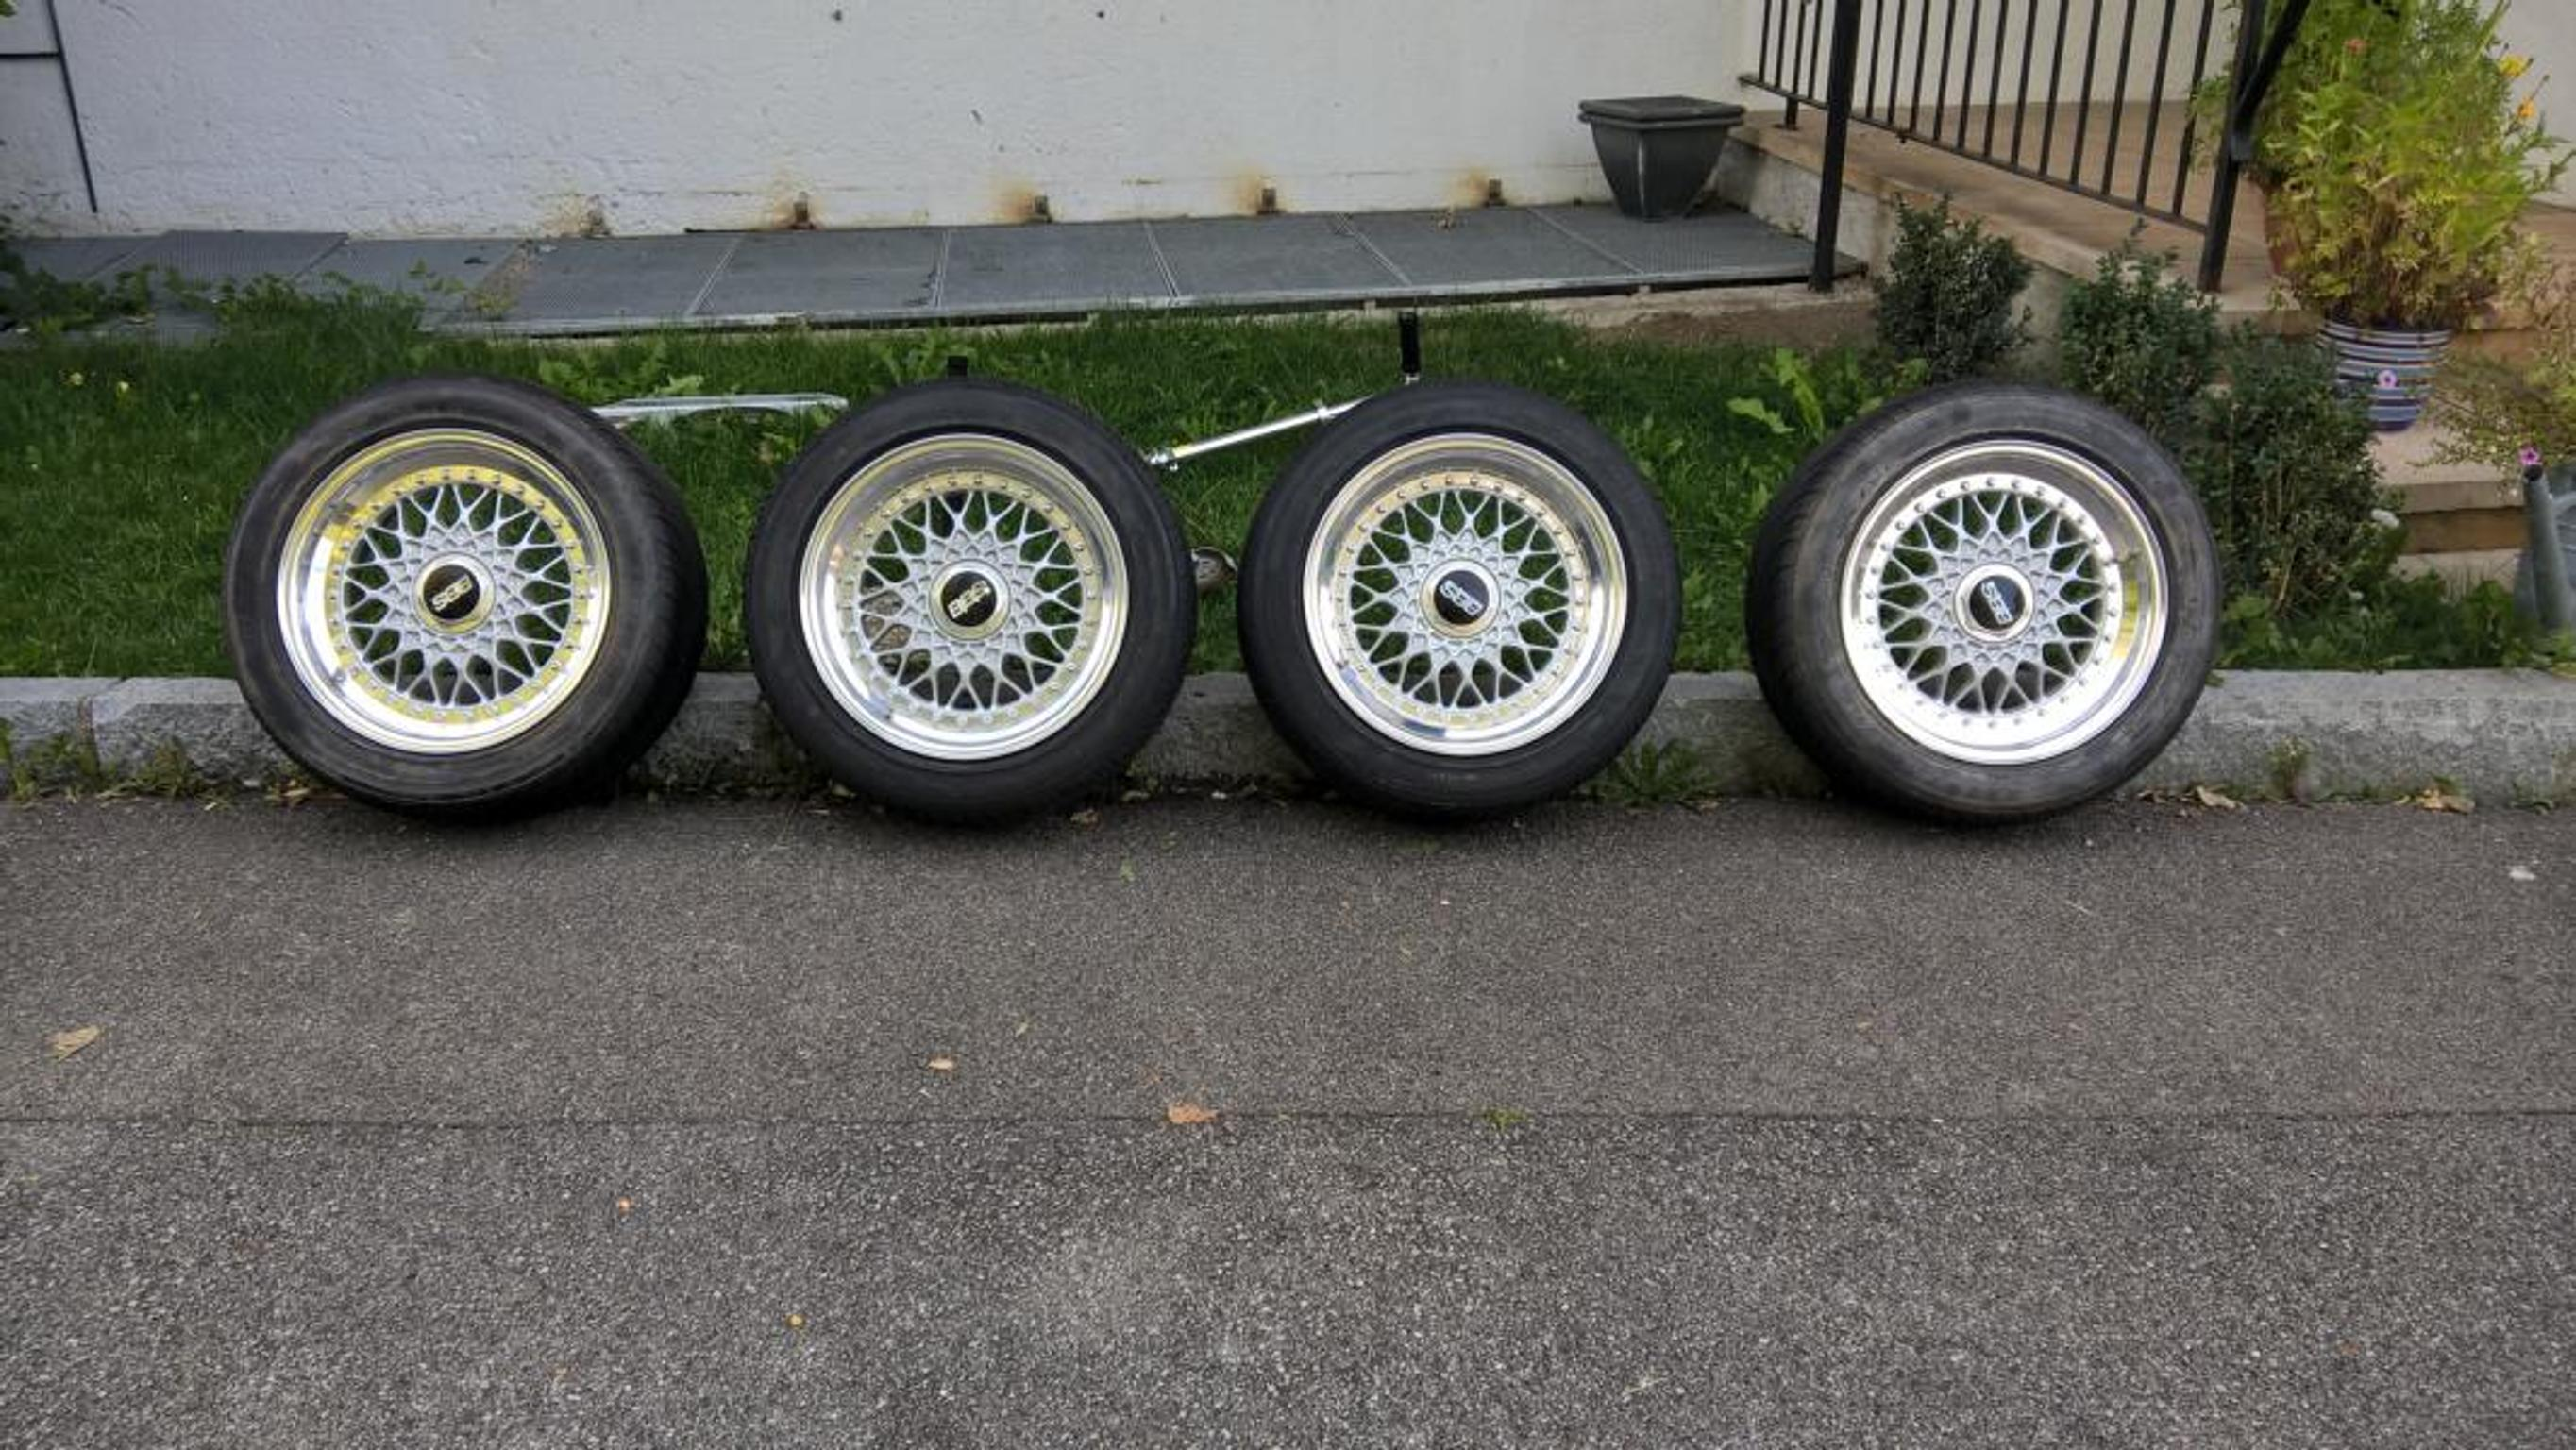 Bbs Rs 070 071 Bmw E30 Golf 1 2 Opel 4x100 In 83373 Taching Am See